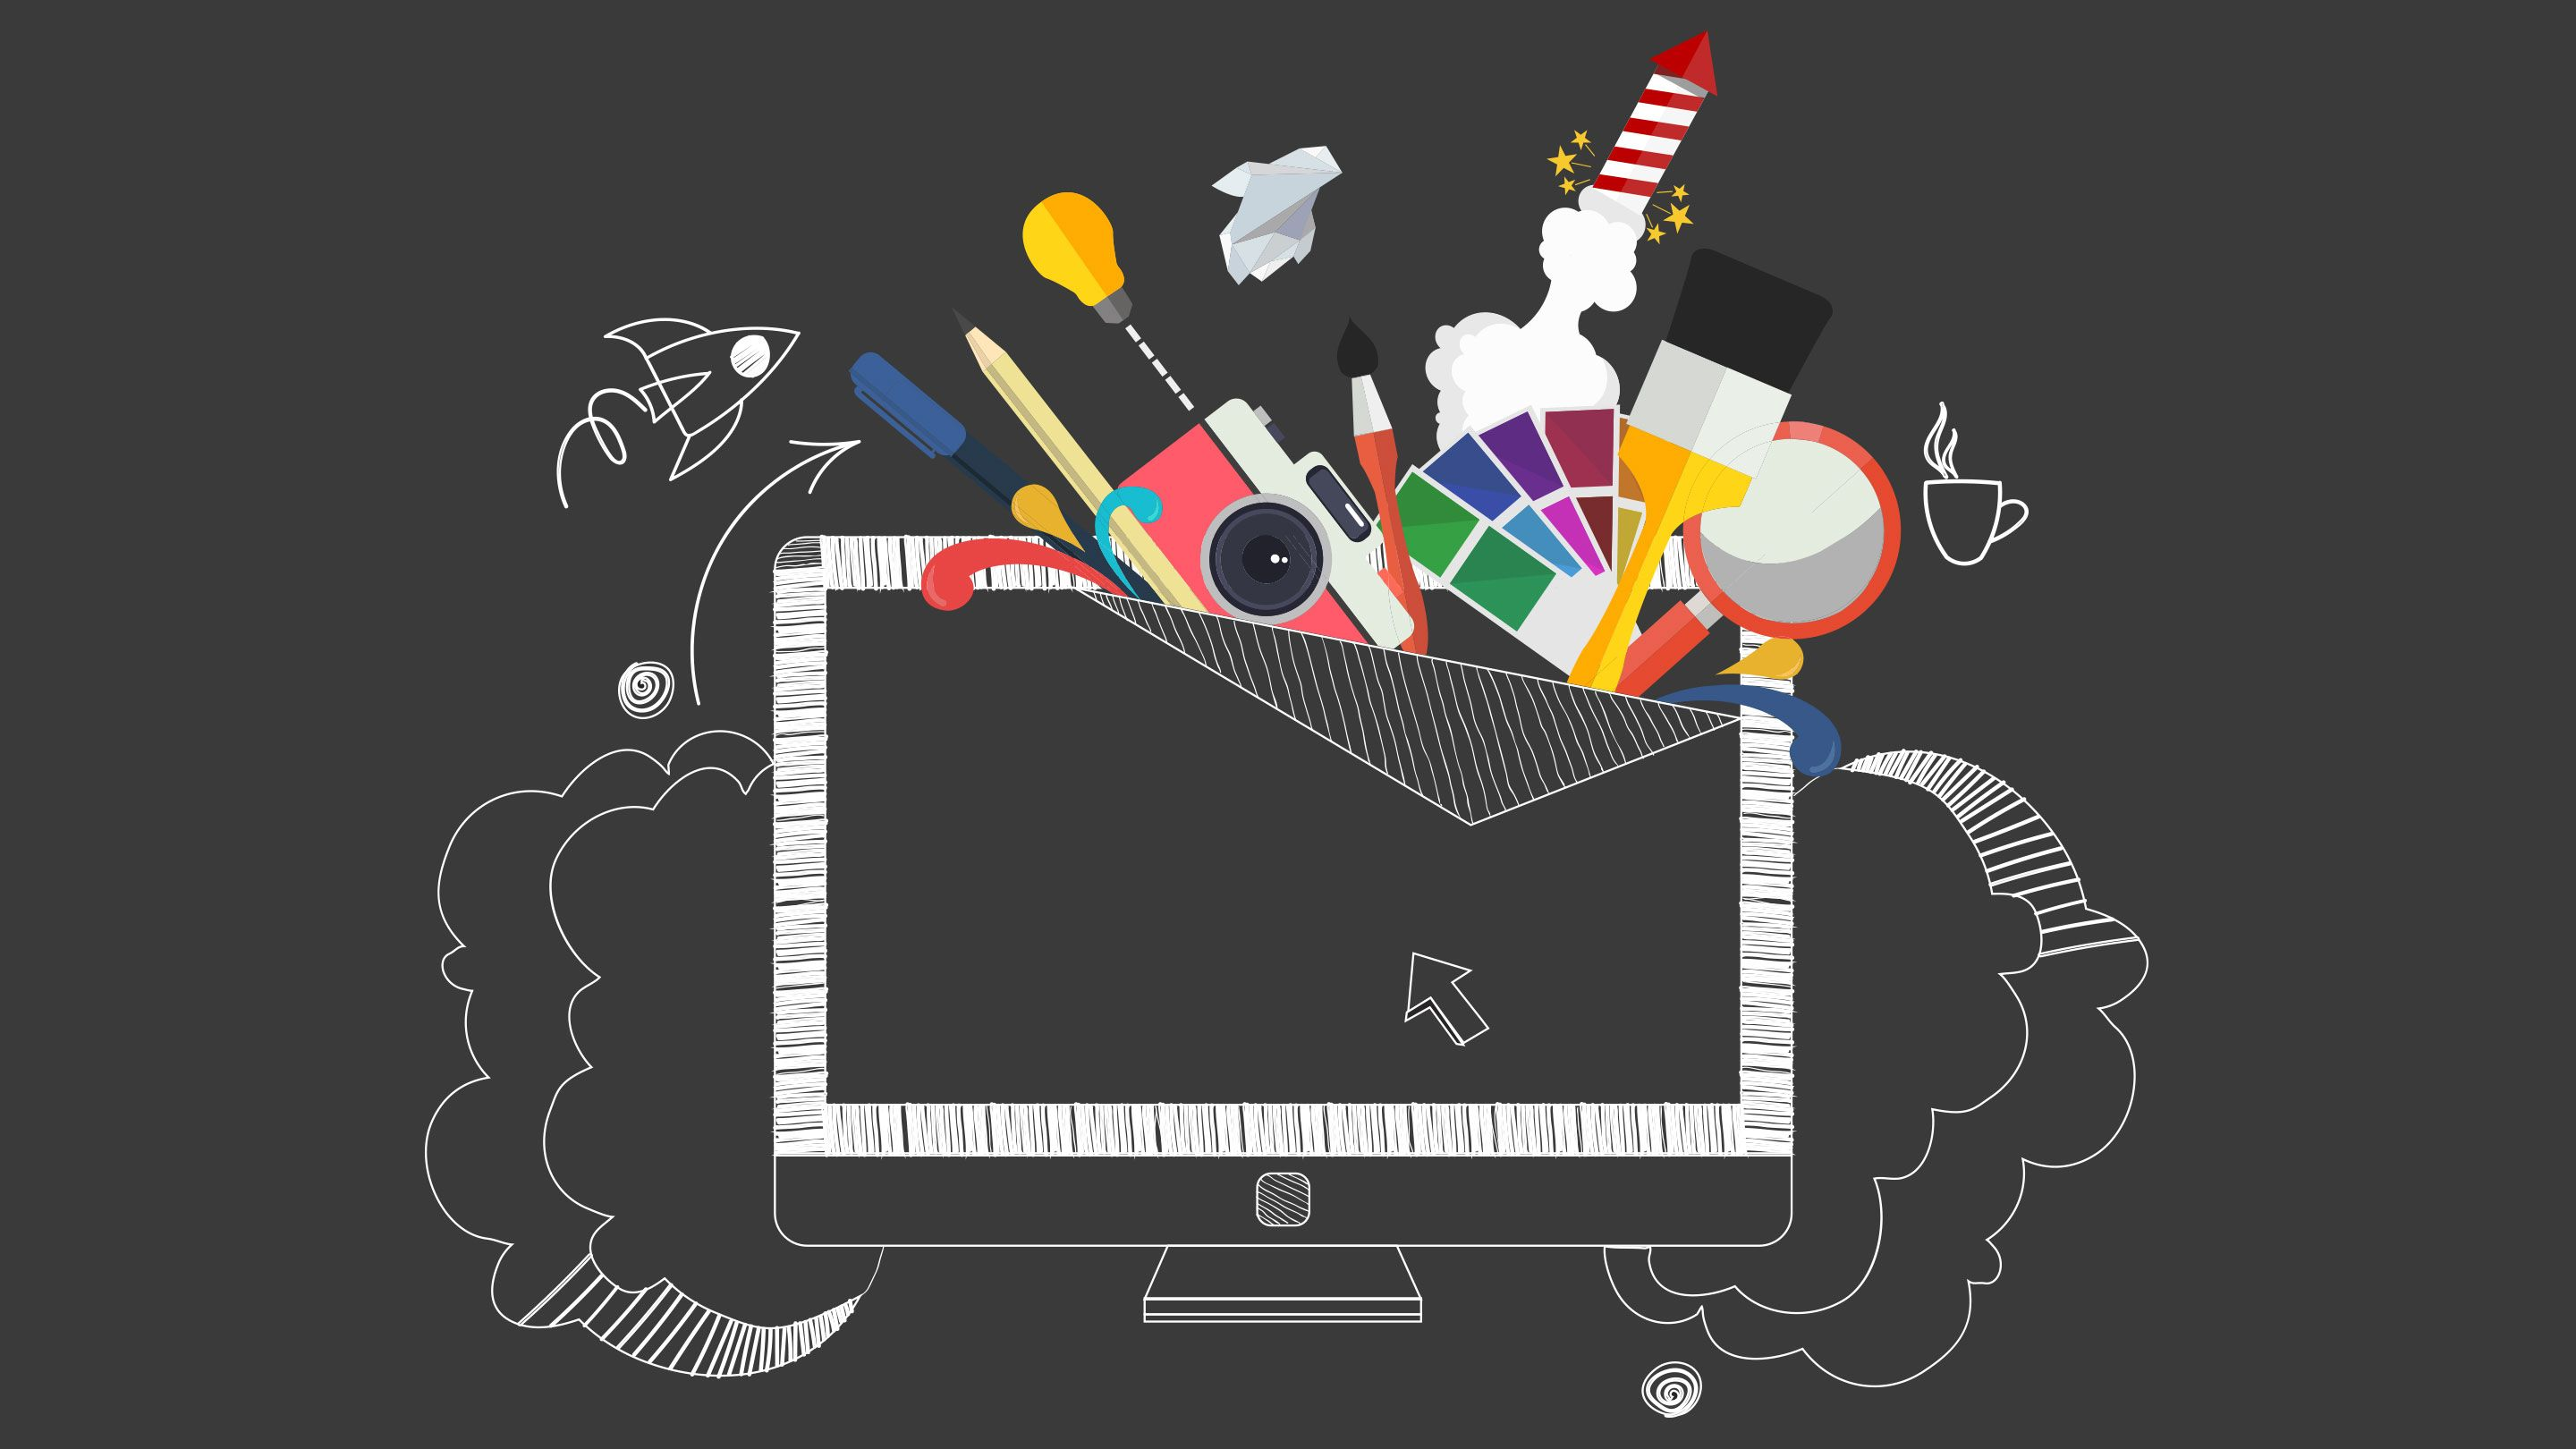 Illustration of a bunch of colorful art tools emerging from a computer monitor